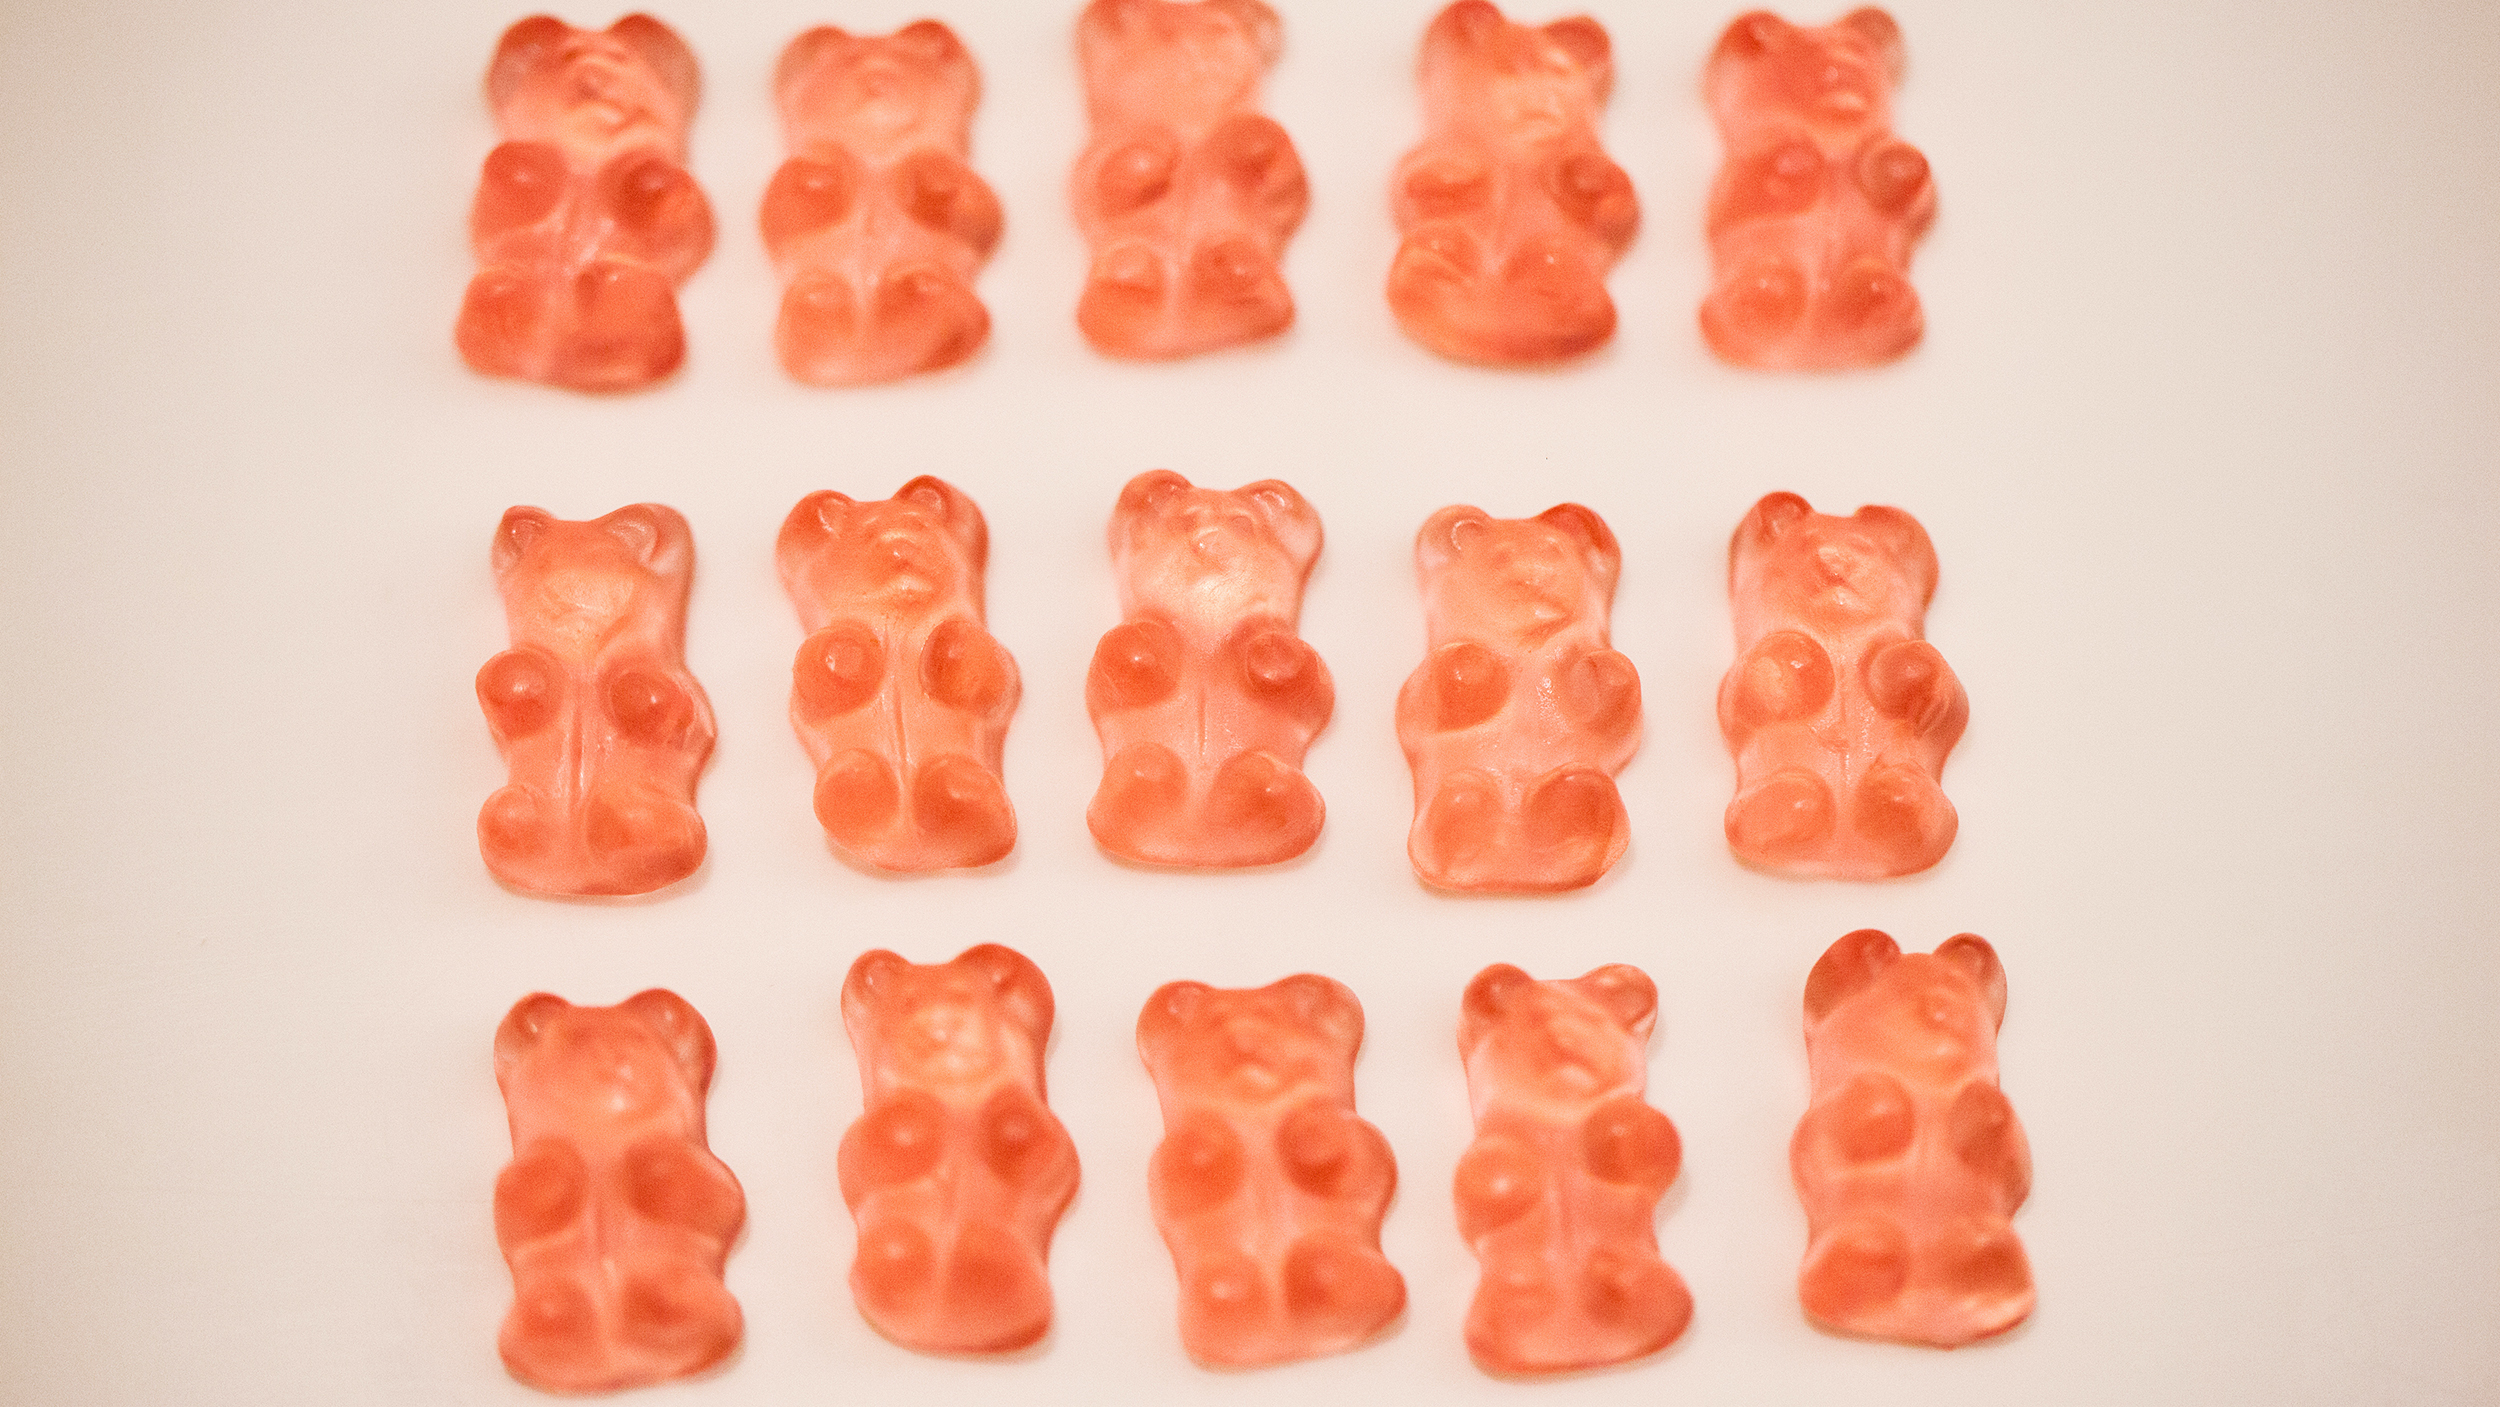 Rose Wine Gummy Bears Are The Latest Trend Wellness Kids 70